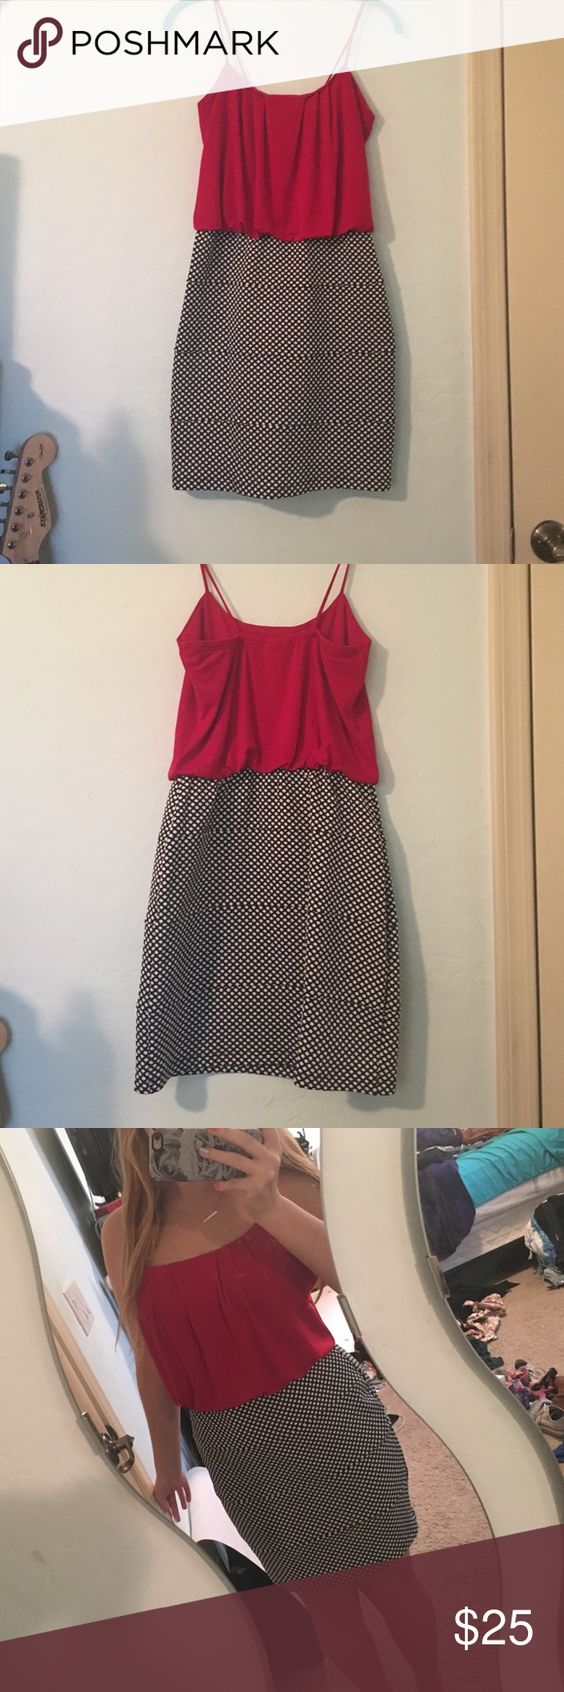 Red and polka dot pencil skirt dress Bought while shopping one day and haven't worn it. Super cute red flowy too attached to a black and white polka dot pencil skirt bottom. Spaghetti straps. No padding. Willing to negotiate! Dresses